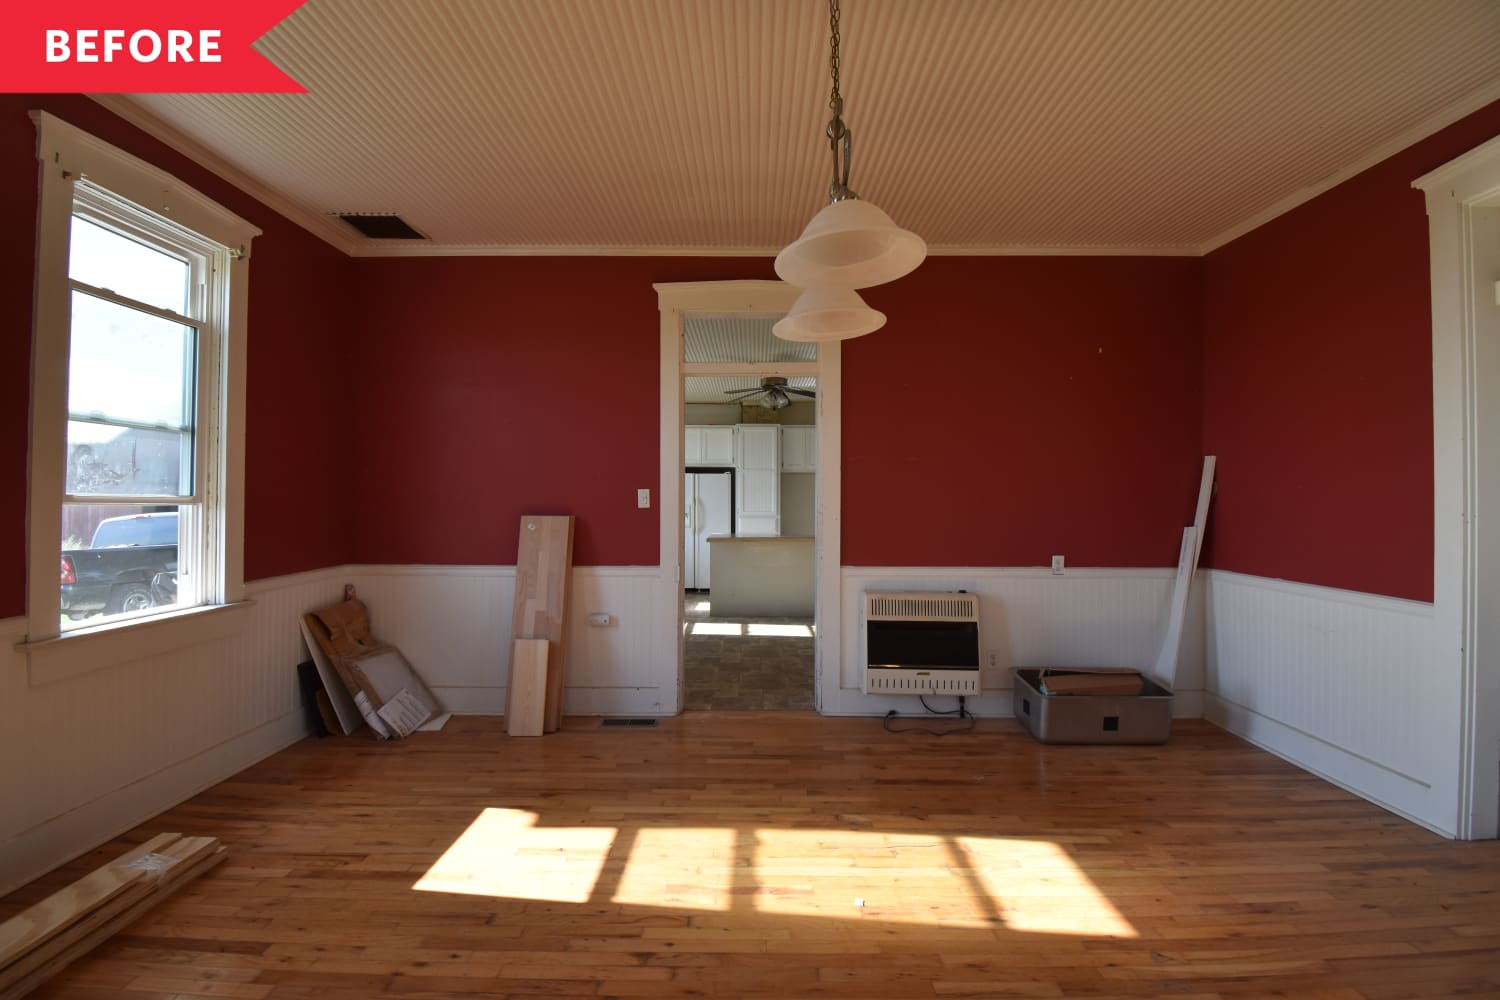 Before and After: A Total Redo Brings out the Best in This 1800s Living Room